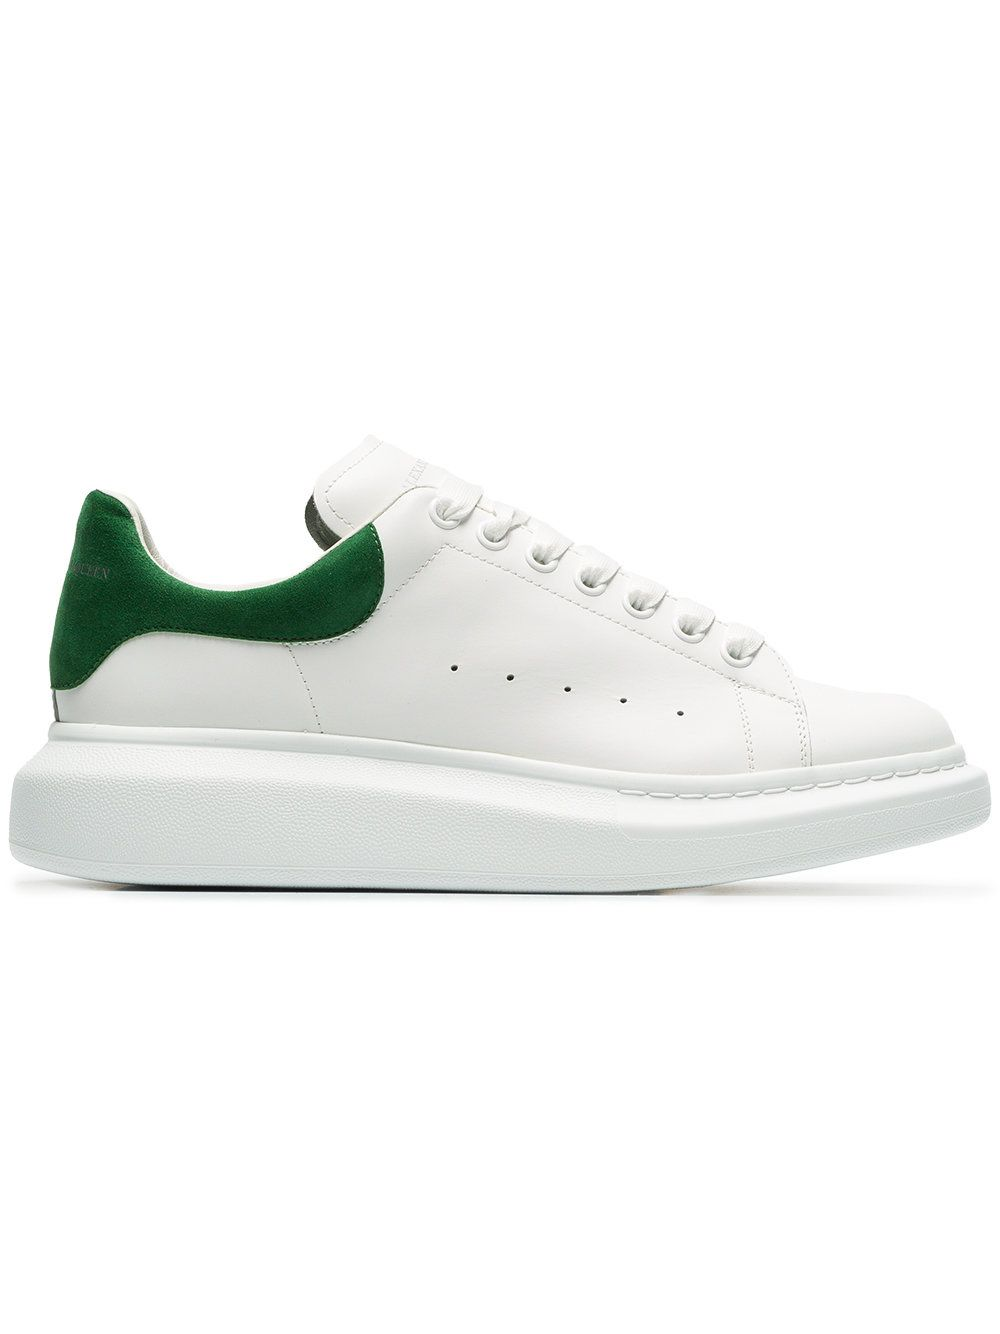 d9295b2bb11e Alexander McQueen White and green Oversized Sole leather sneakers ...